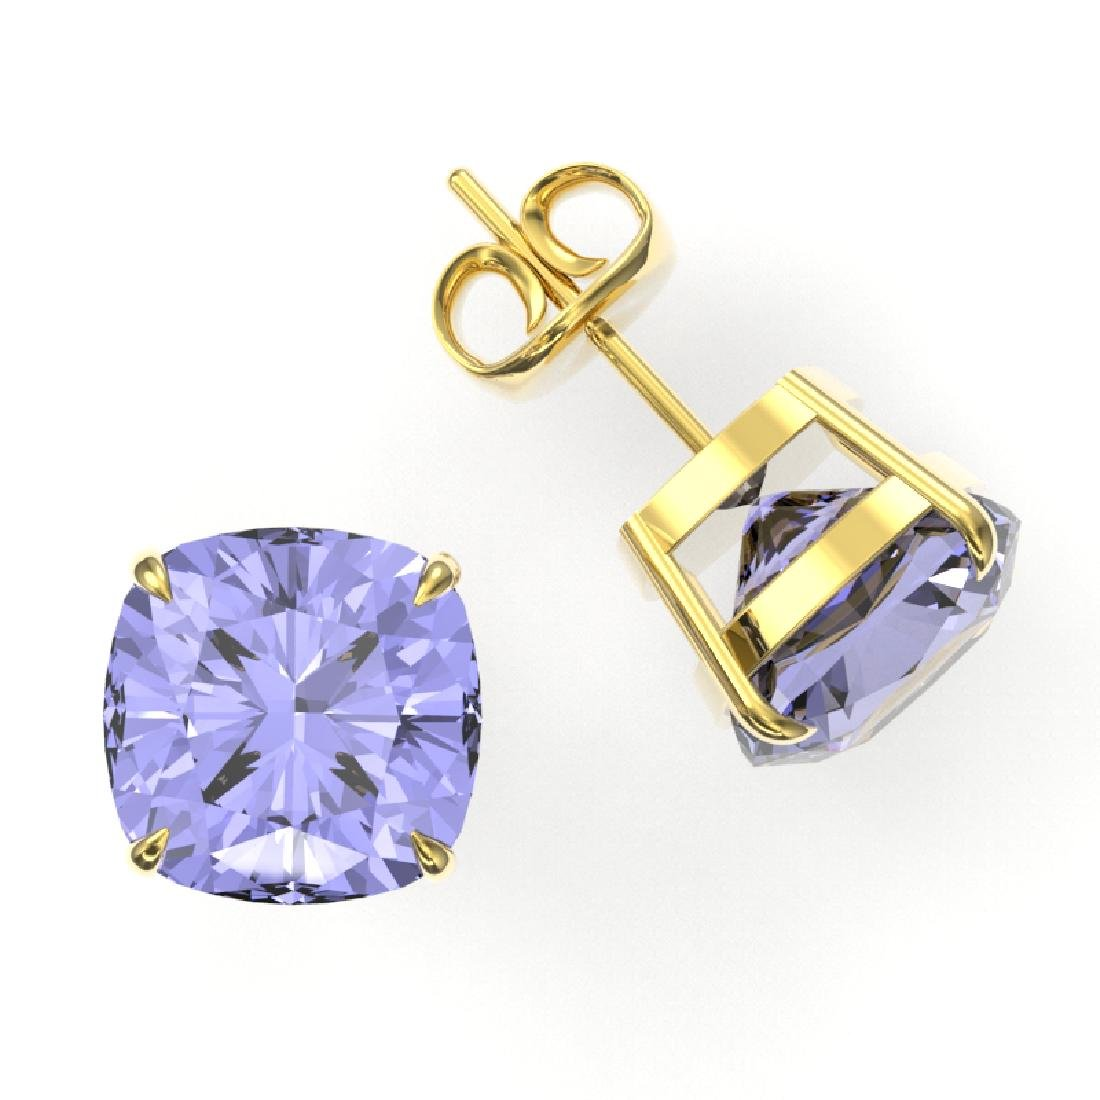 12 CTW Cushion Cut Tanzanite Designer Solitaire Stud - 2